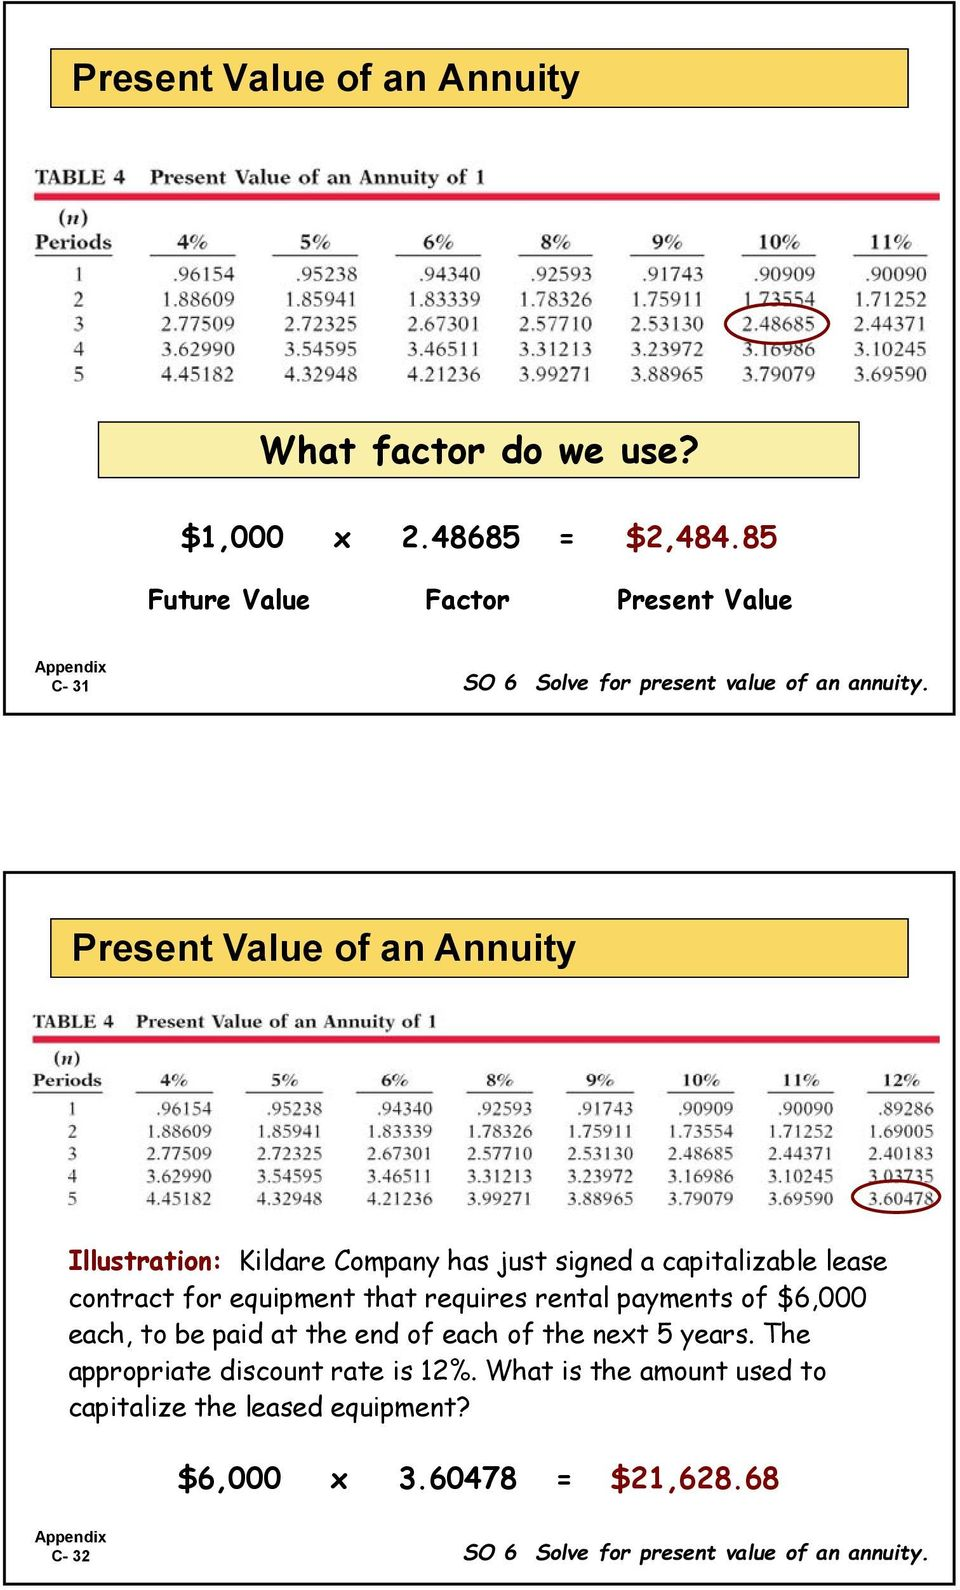 Present Value of an Annuity Illustration: Kildare Company has just signed a capitalizable lease contract for equipment that requires rental